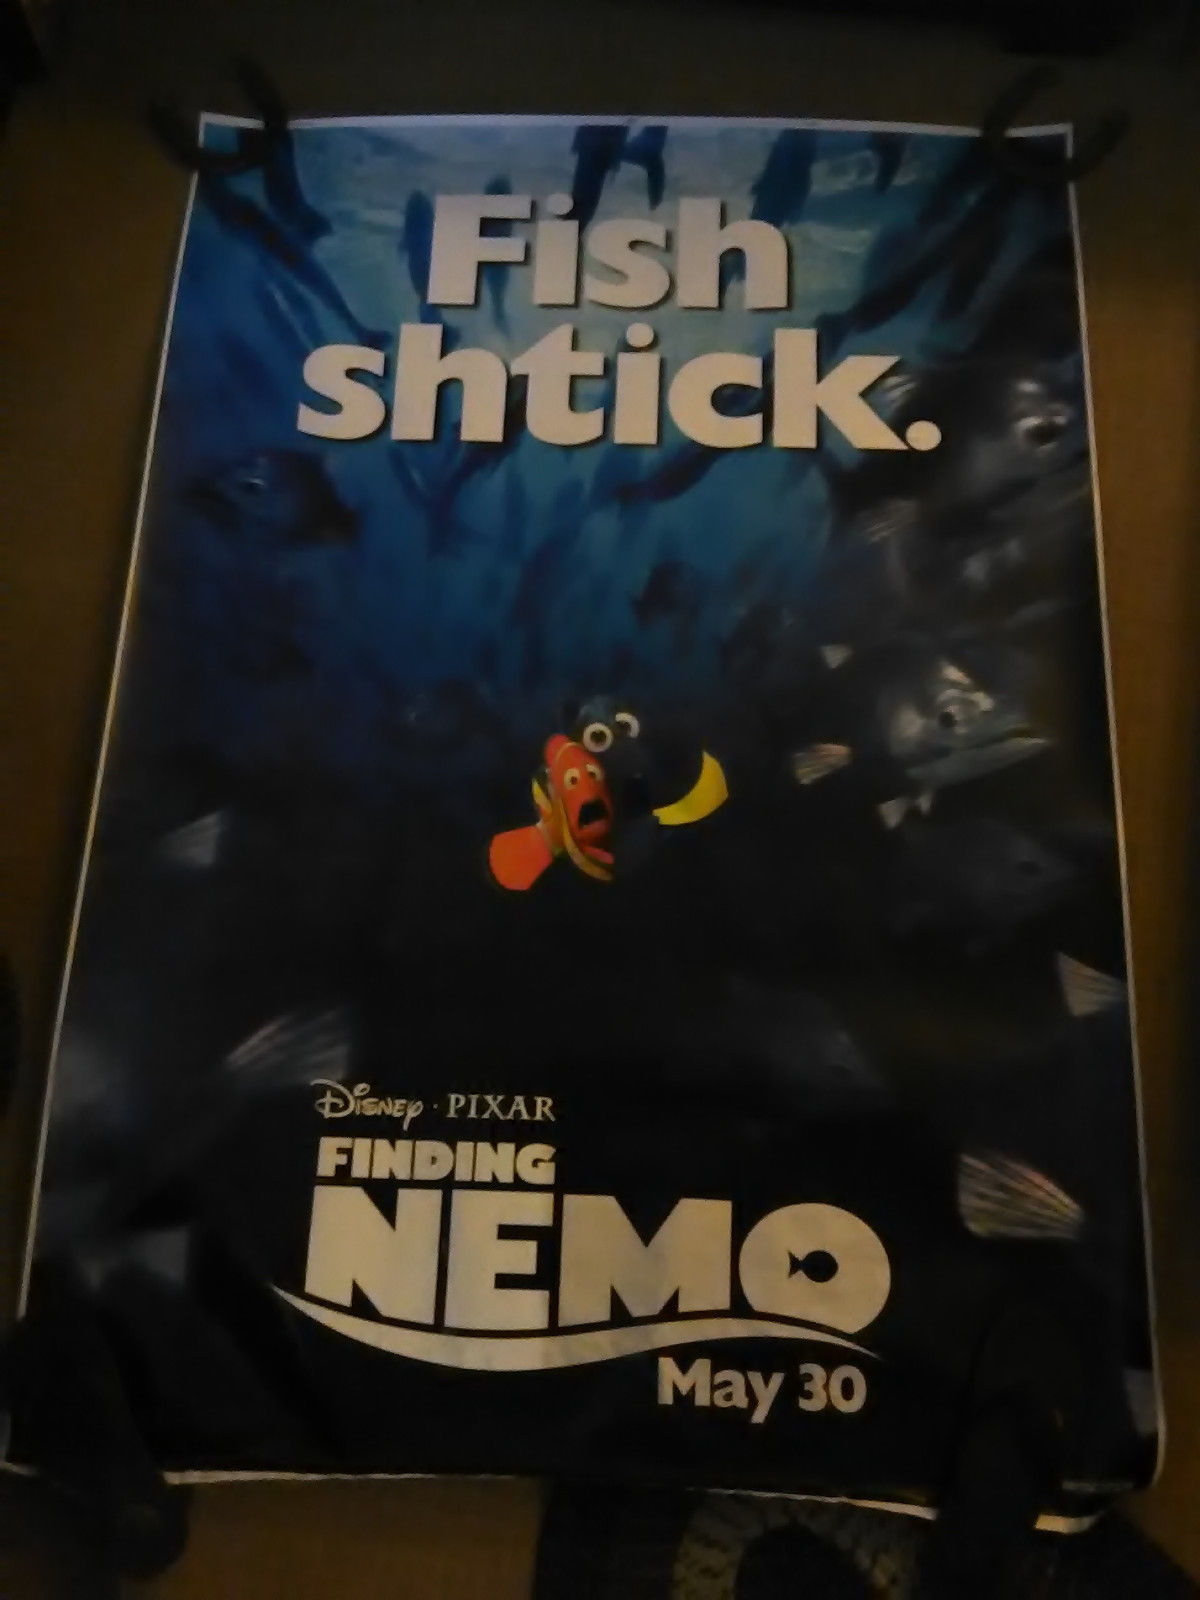 finding nemo bus shelter